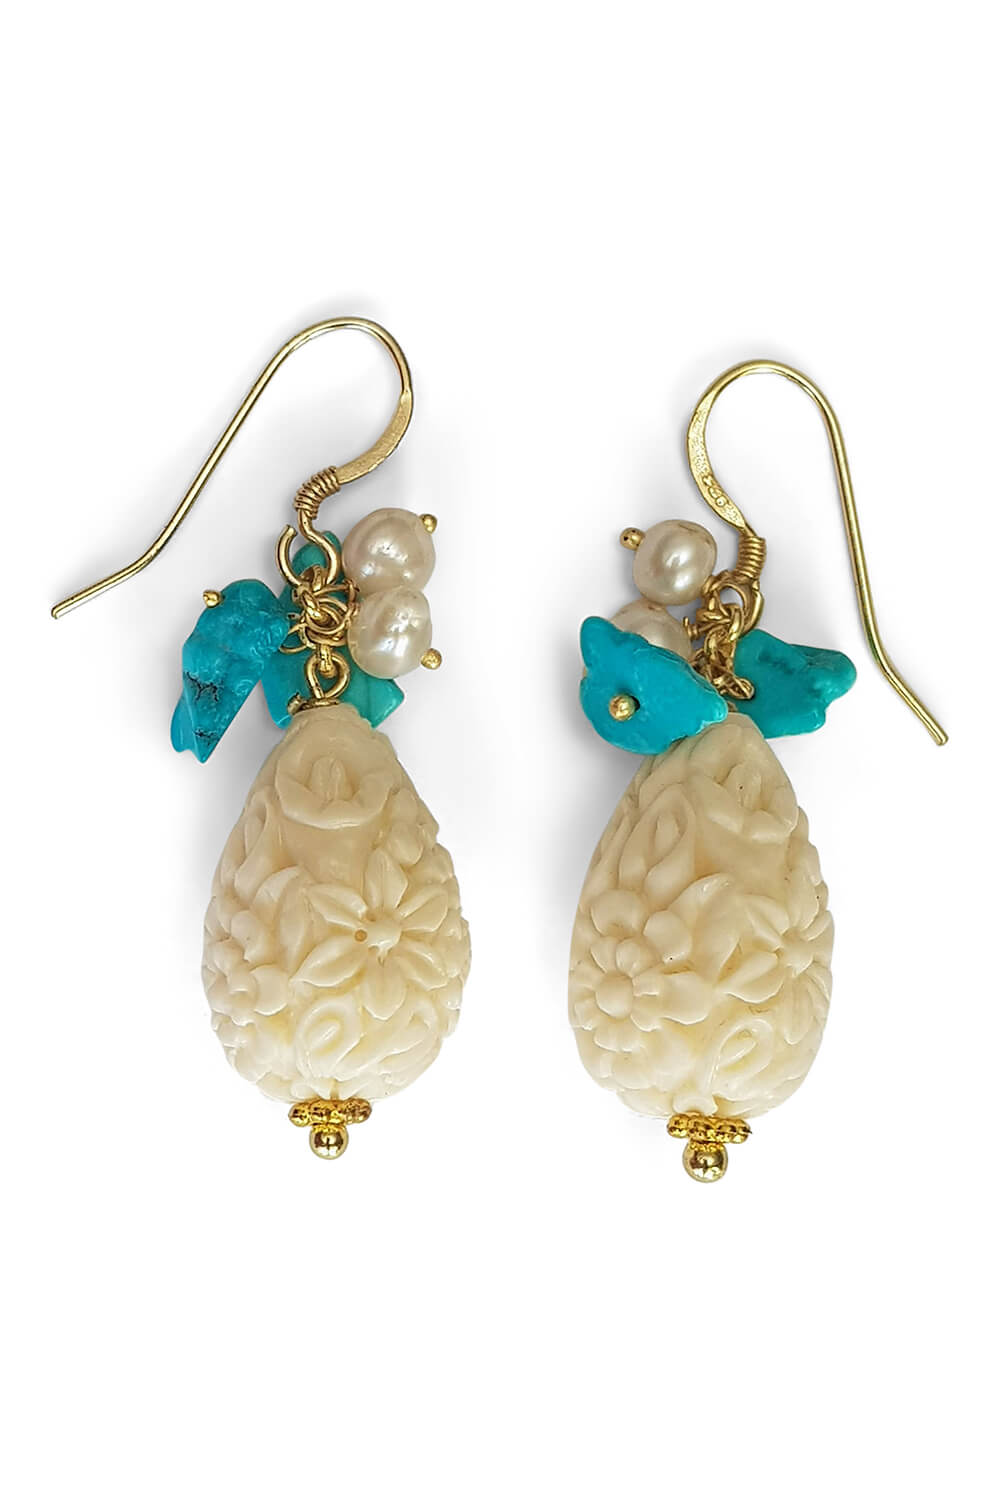 ivory and turquoise earrings with carved bone, turquoise and pearls ANACAPRI